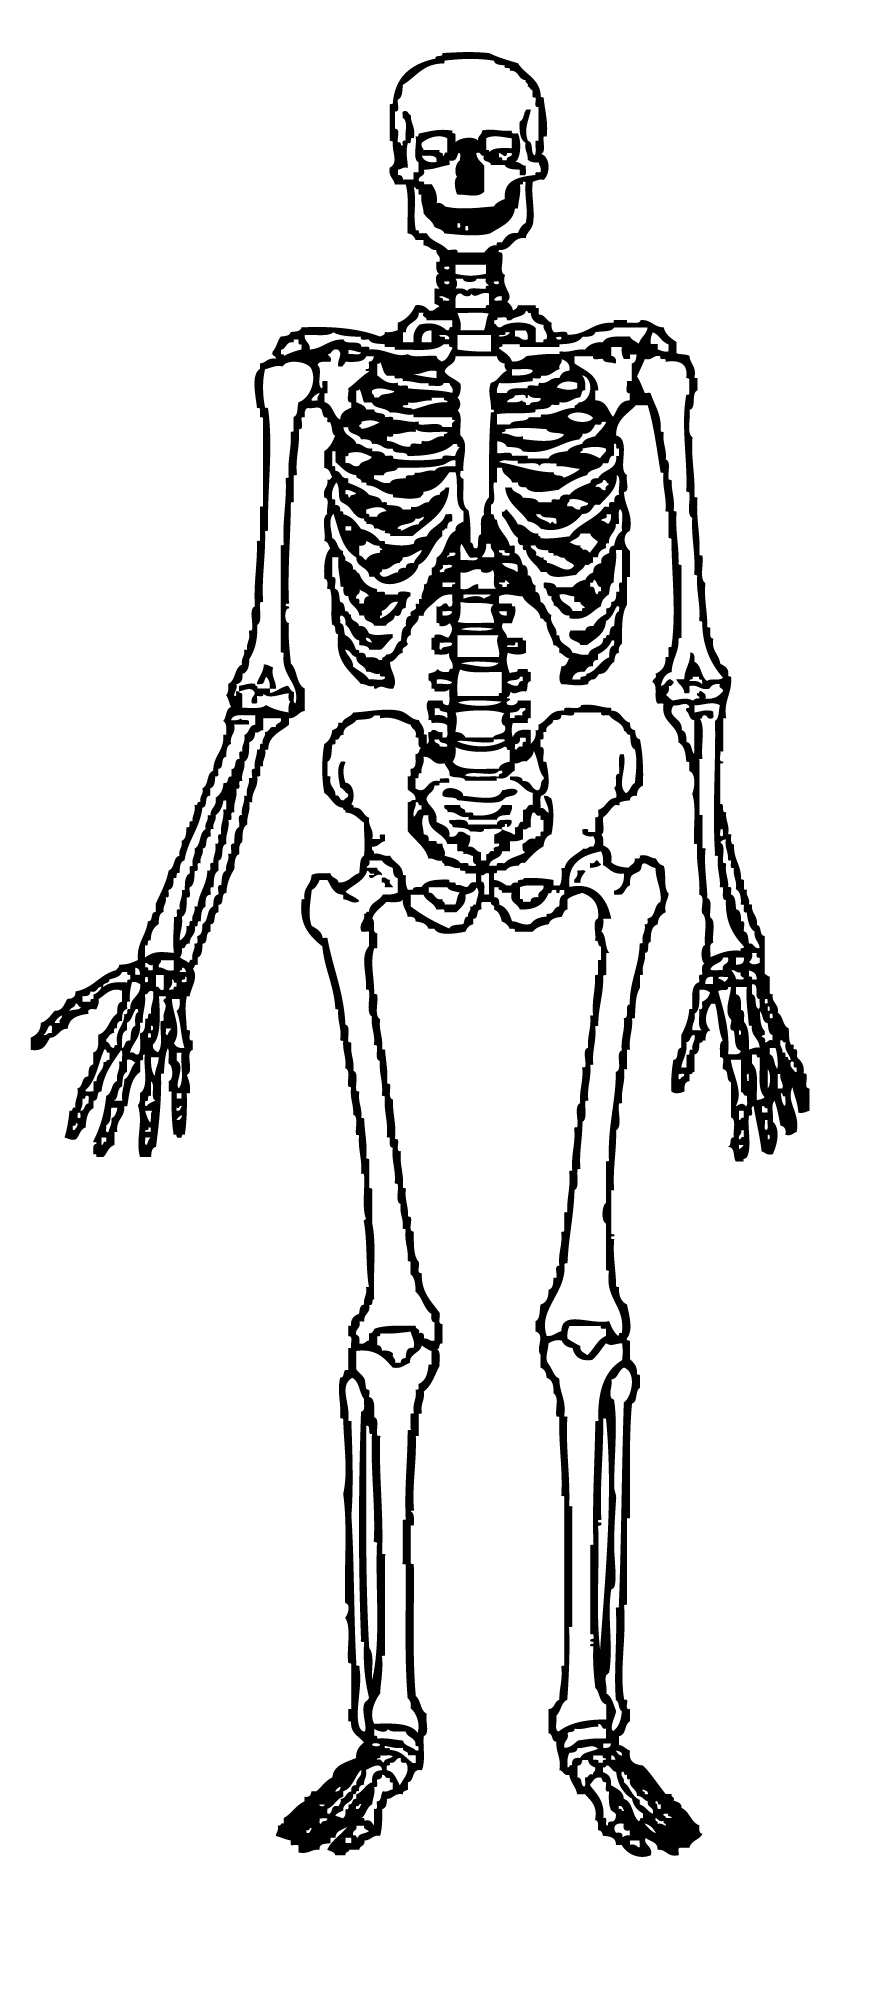 Free skeleton clip art. Bone clipart human biology